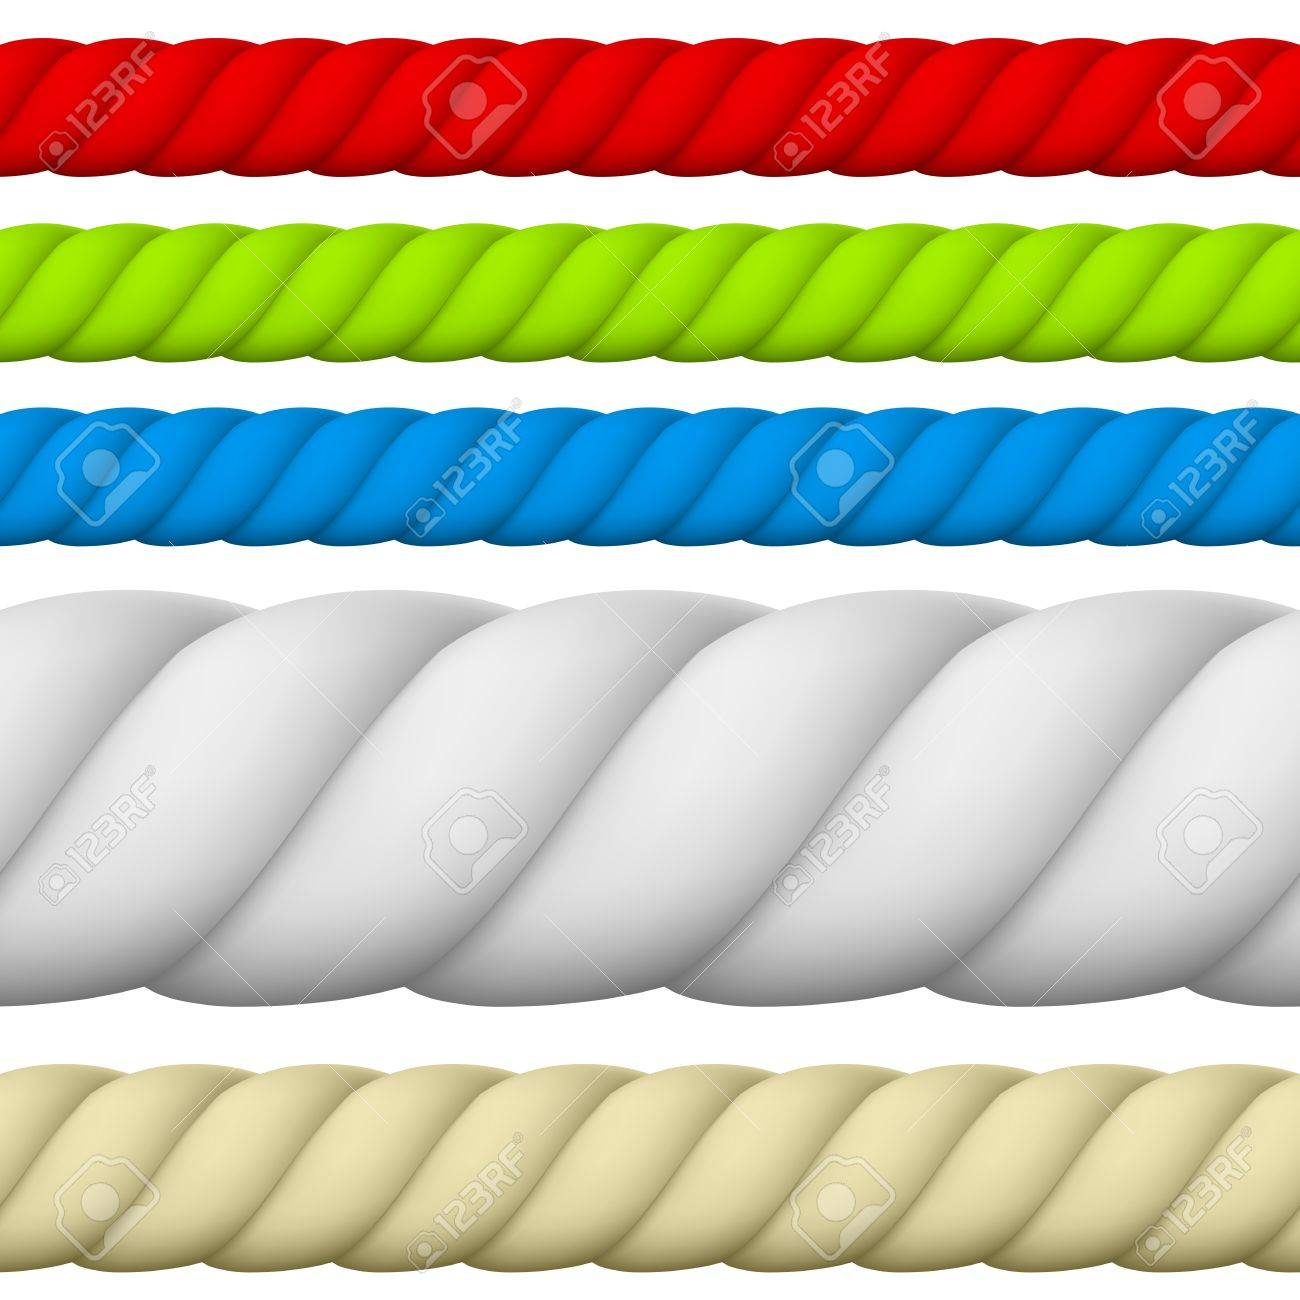 Illustration Of Different Size And Color Rope. Royalty Free ...